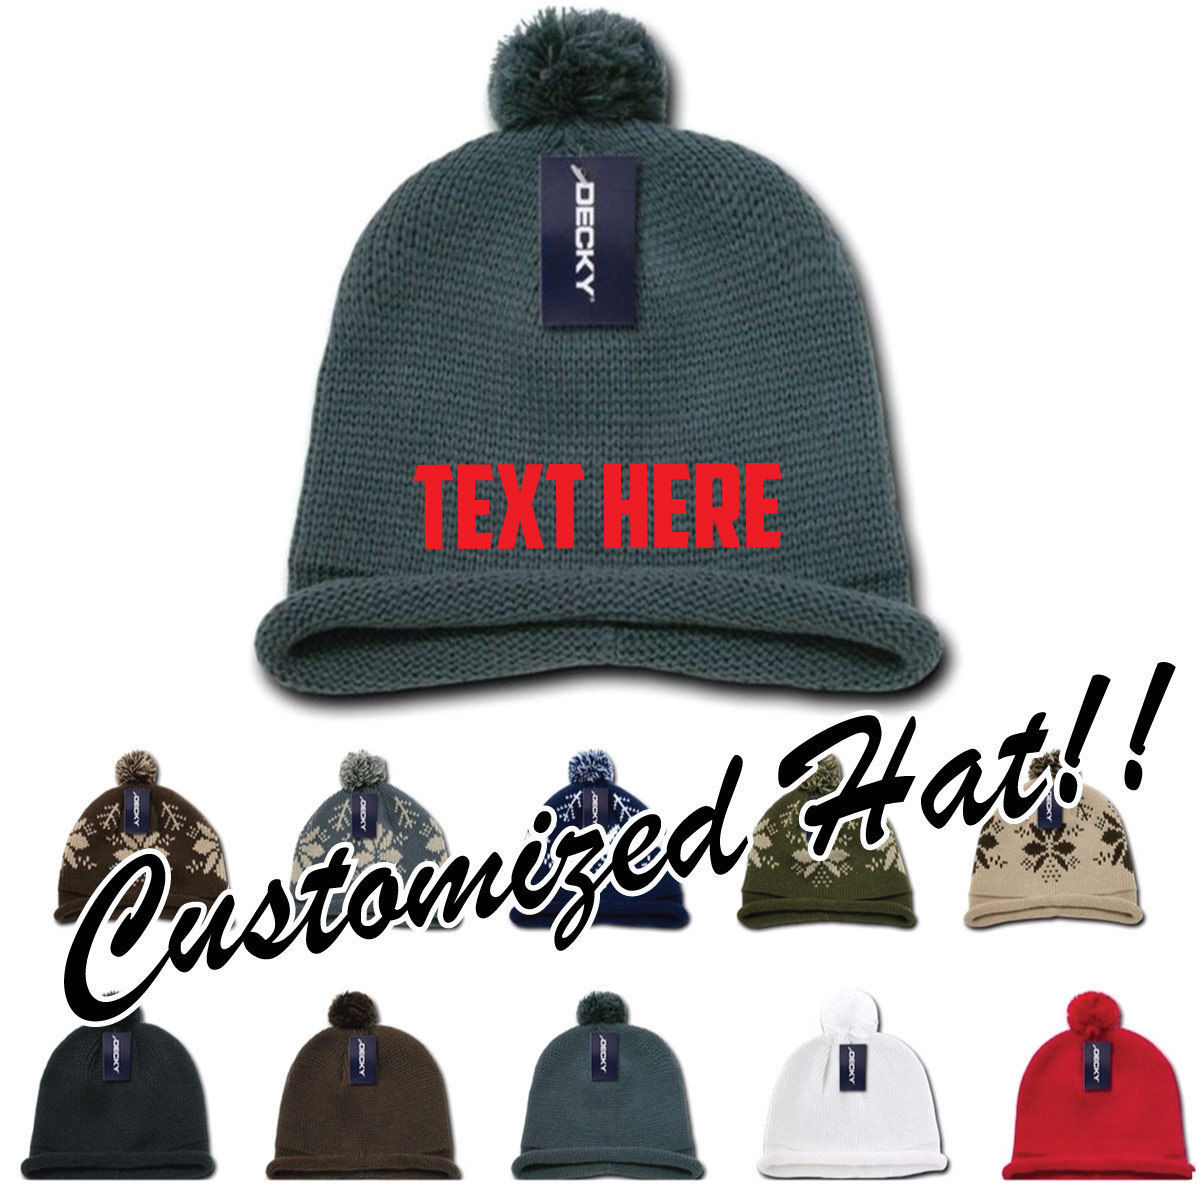 80493b04f7d S l1600. S l1600. Previous. CUSTOM EMBROIDERY Personalized Customized Decky Solid  Roll Up Beanie ...